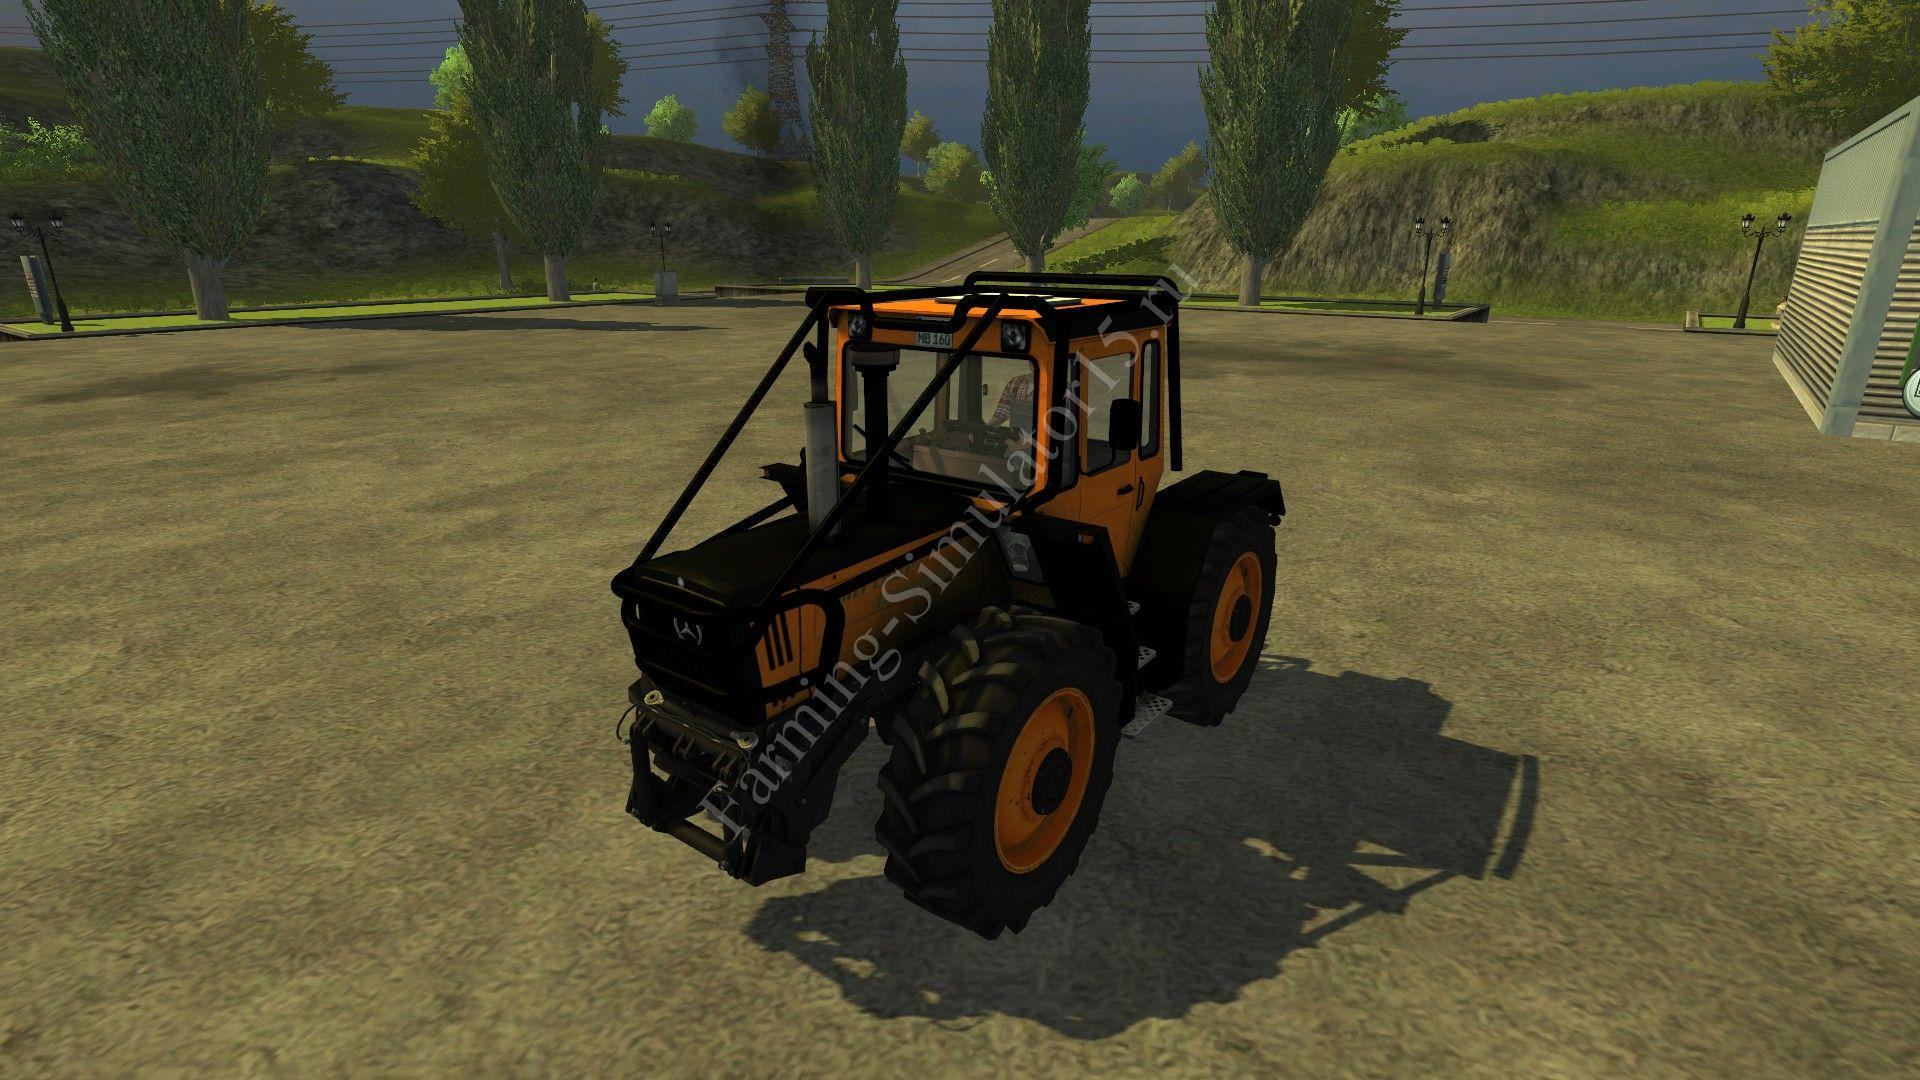 Мод трактора MB Trac 1600 Turbo Orange Forest v 3.0 Farming Simulator 2013, Farming Simulator 13